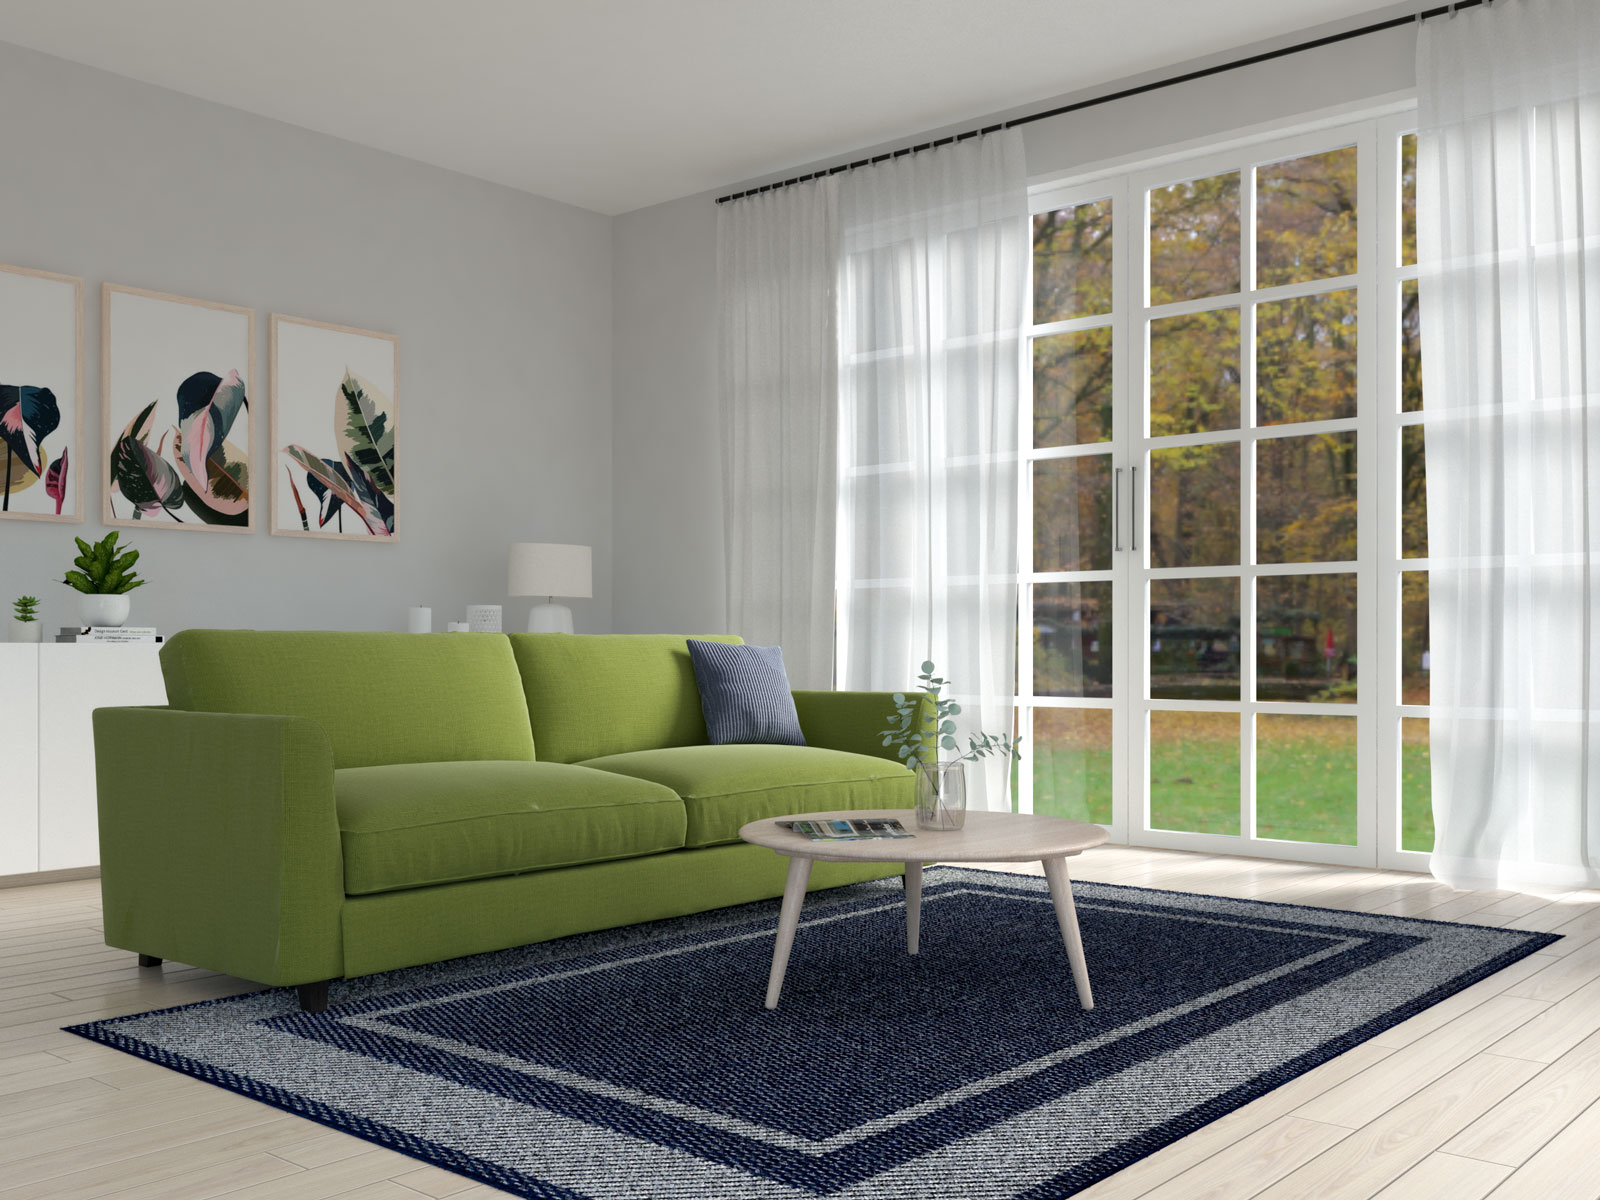 Olive sofa with navy rug